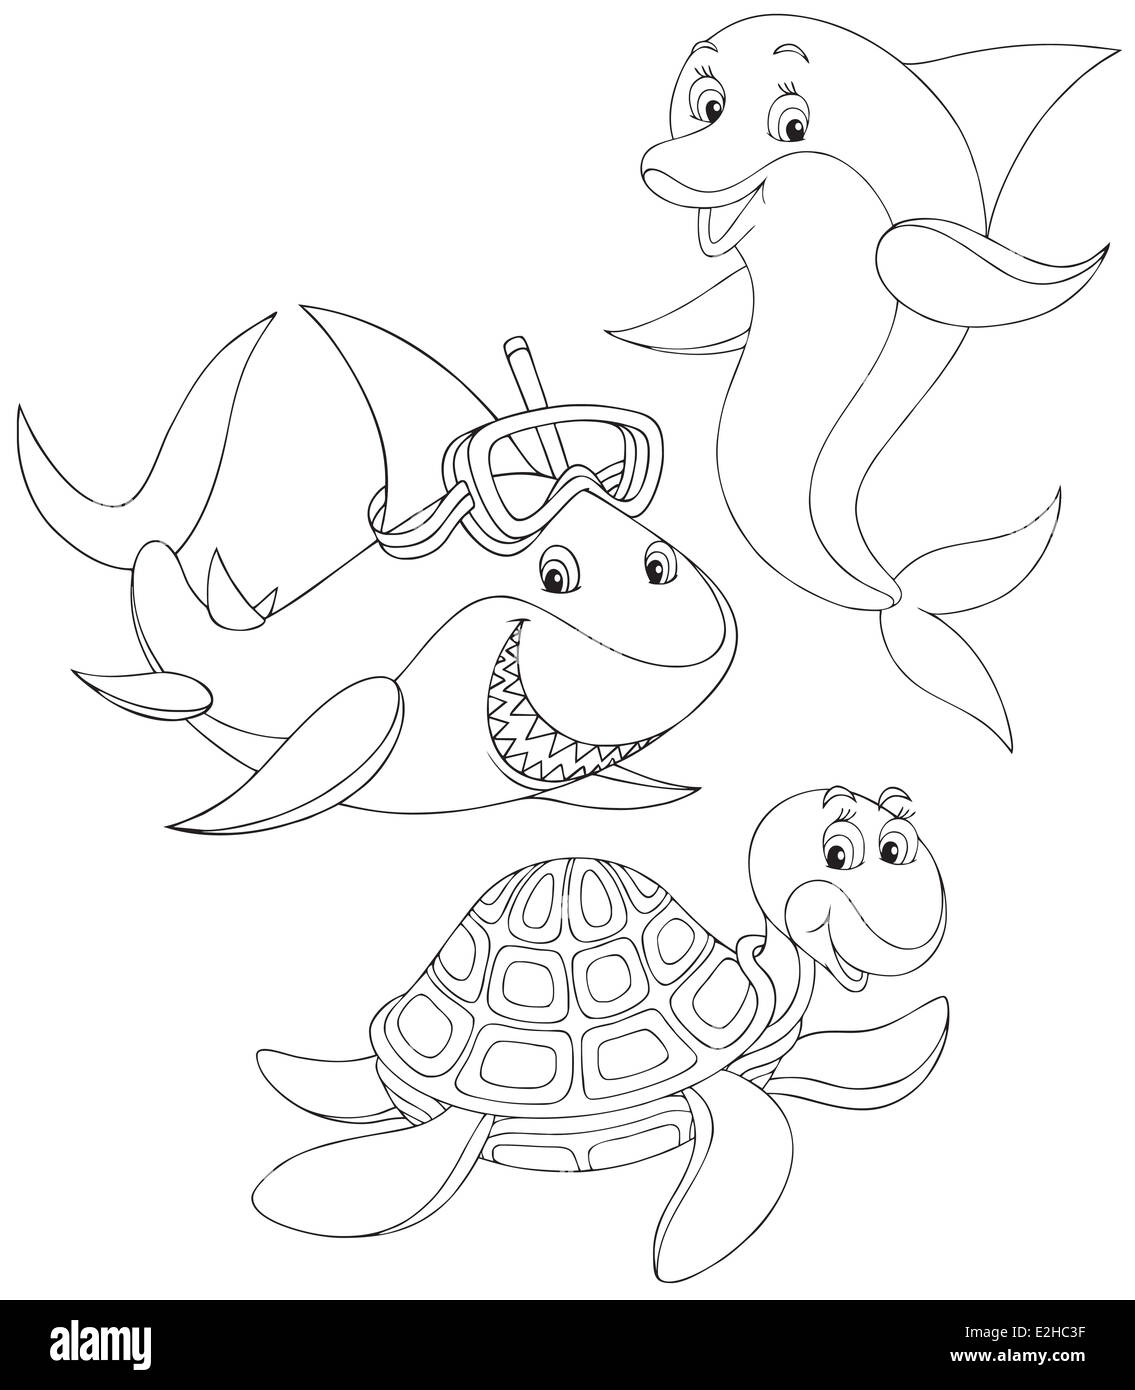 Great white shark, sea turtle and dolphin, black and white outline ...